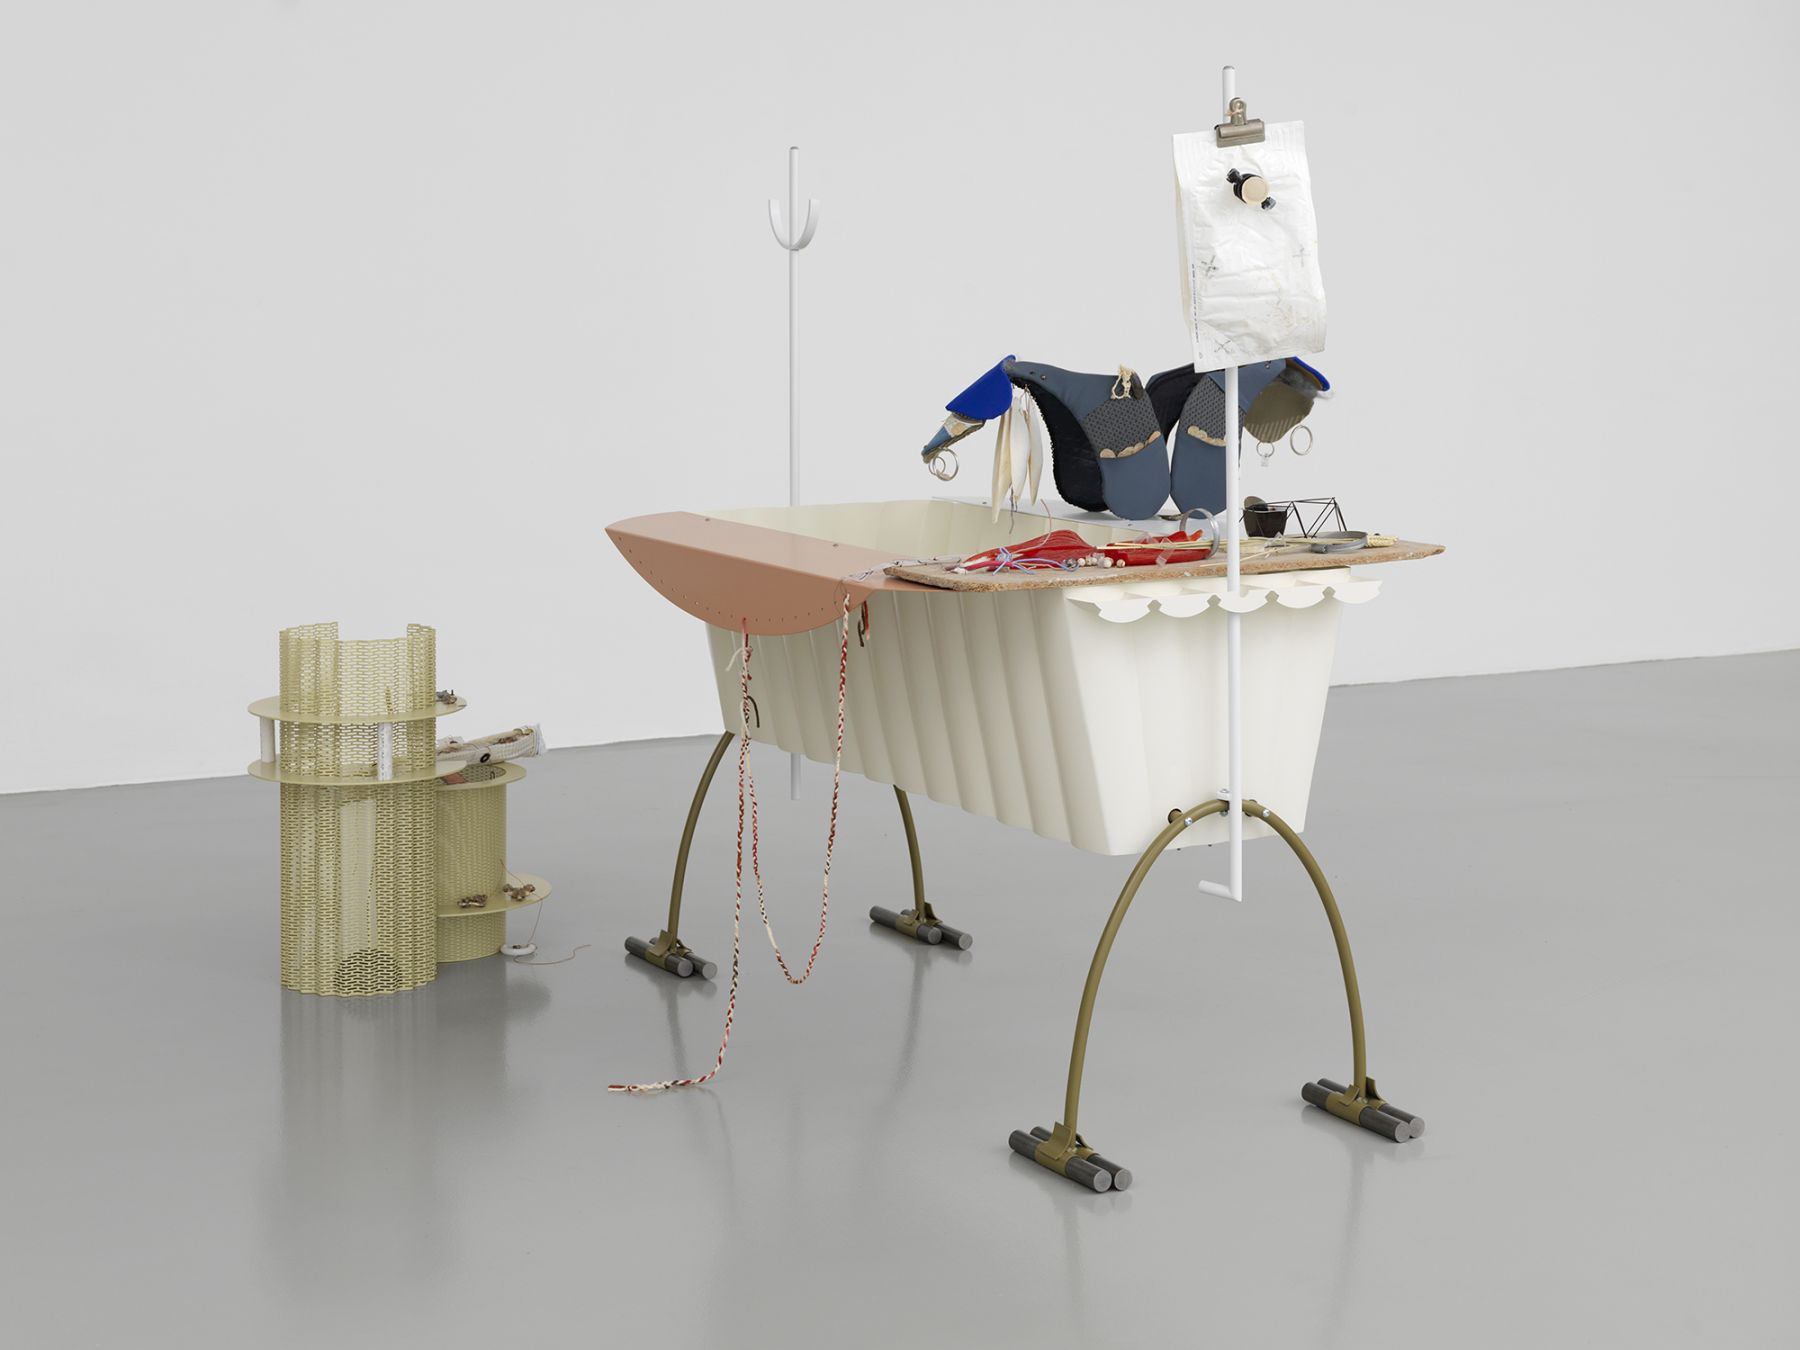 Helen Marten Bodybowl, 2014 Welded steel, aluminium, fabric, plastic, cuttlefish, braided wool, cast bronze, cast rubber, fossil teeth, corn stalk, cast resin, marbles, chipboard, electrical wire, stainless steel, toothpicks 67 x 70 7⁄8 x 45 1⁄4 in (170.18 x 180.02 x 114.94 cm)